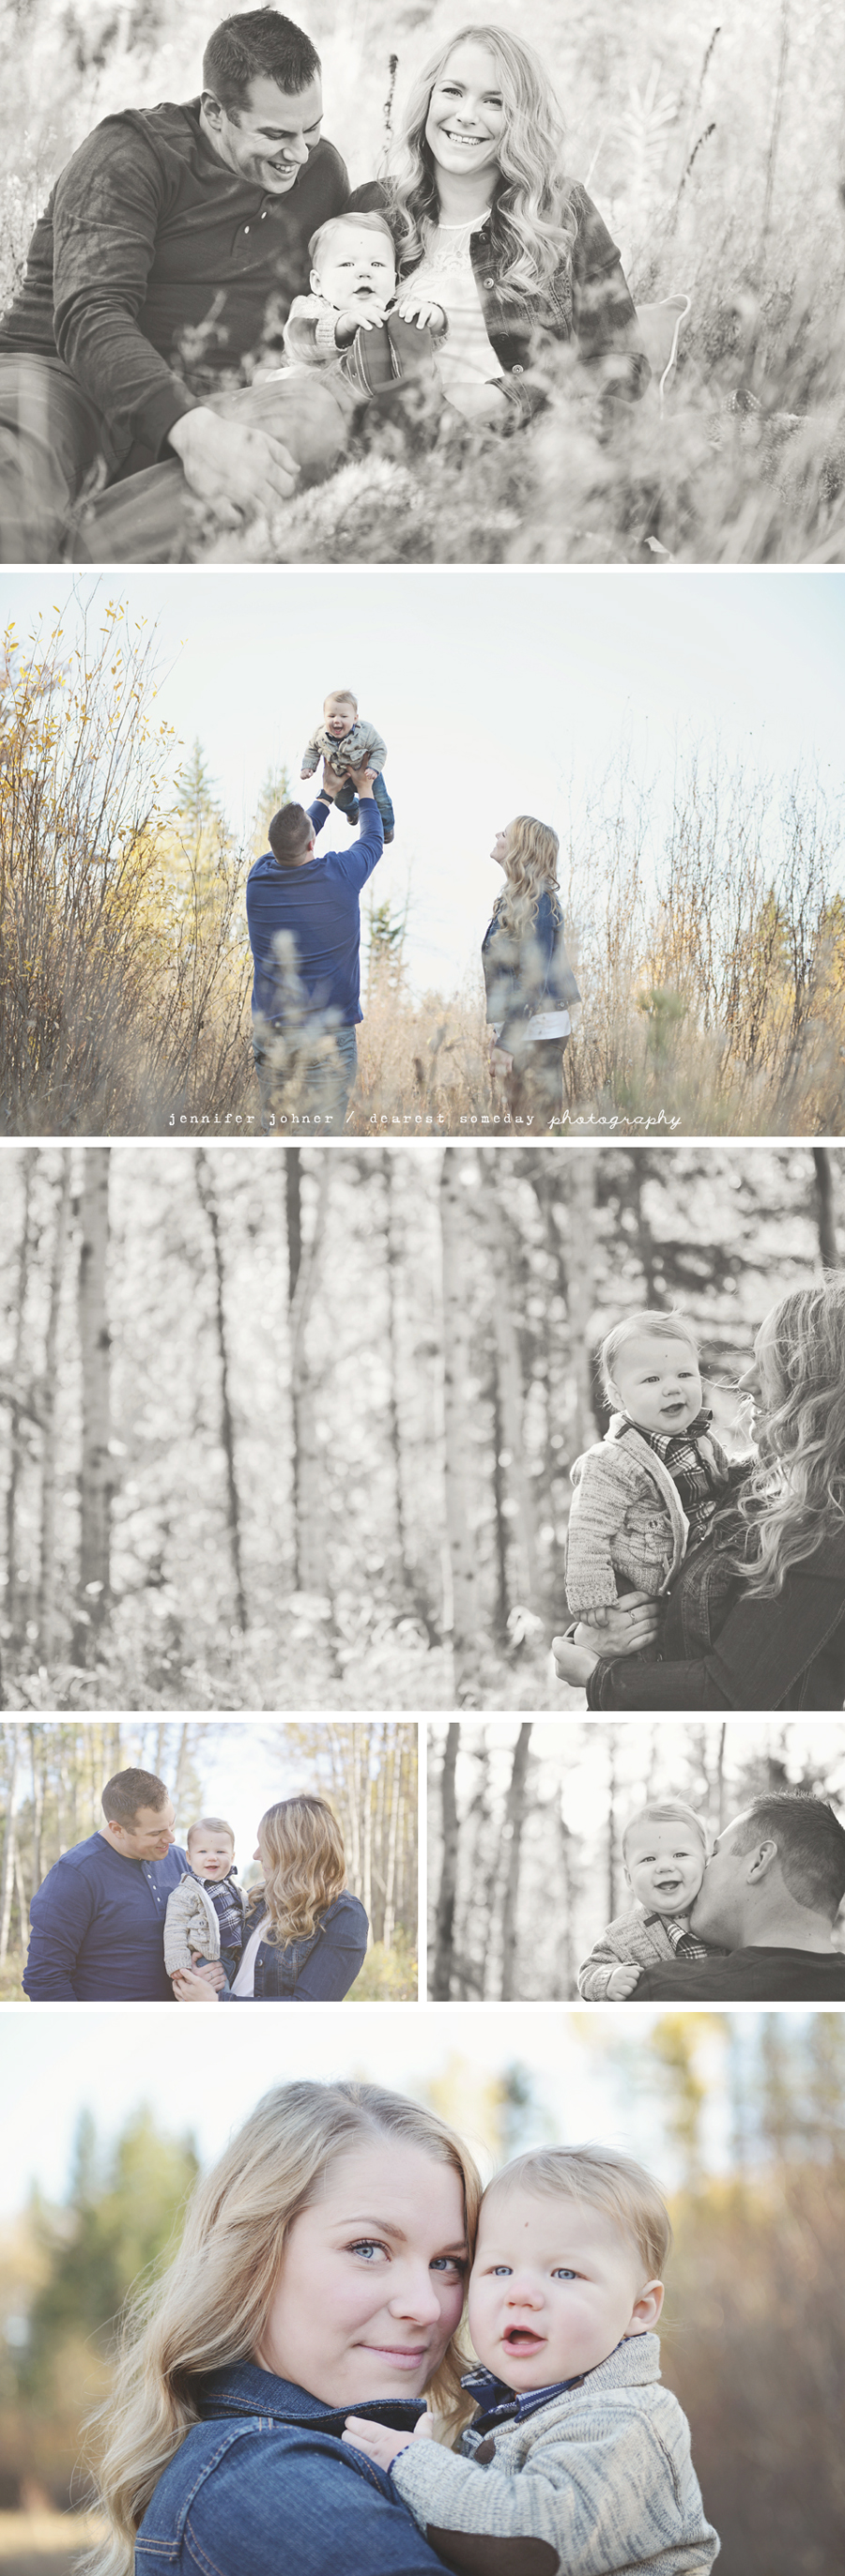 dearest someday family photography